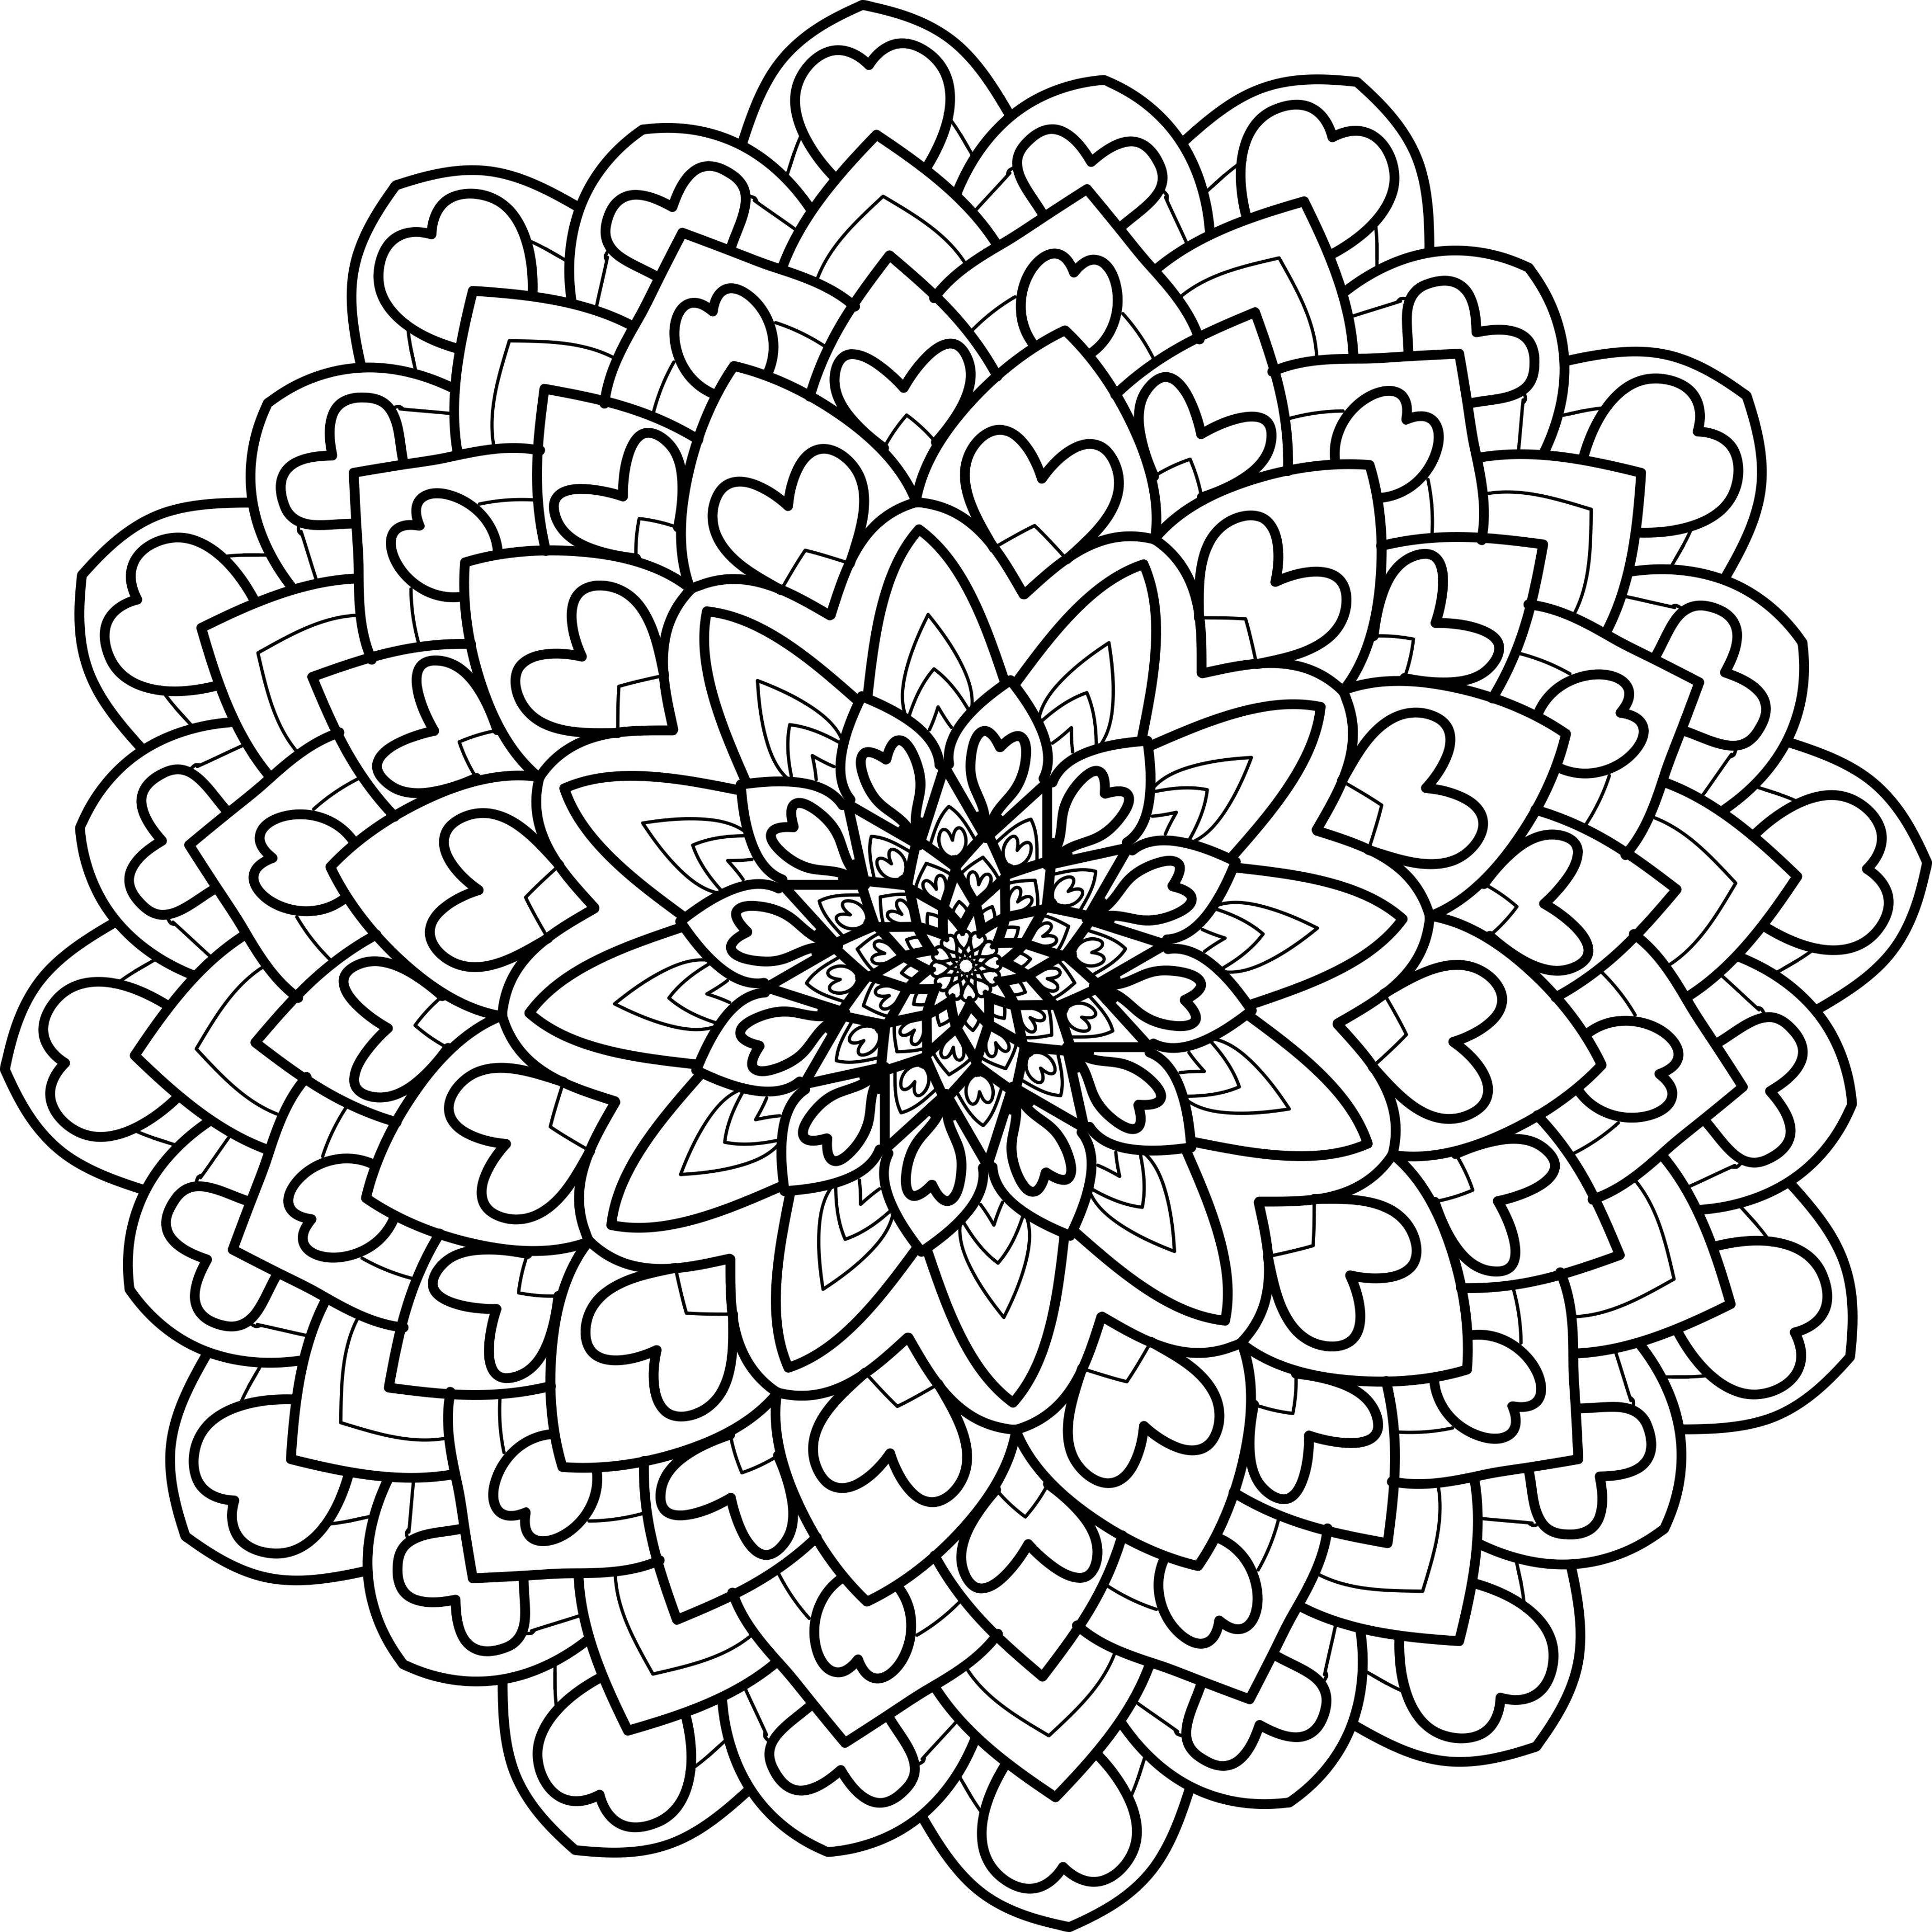 mandala and mandorla coloring books, grab em while they're